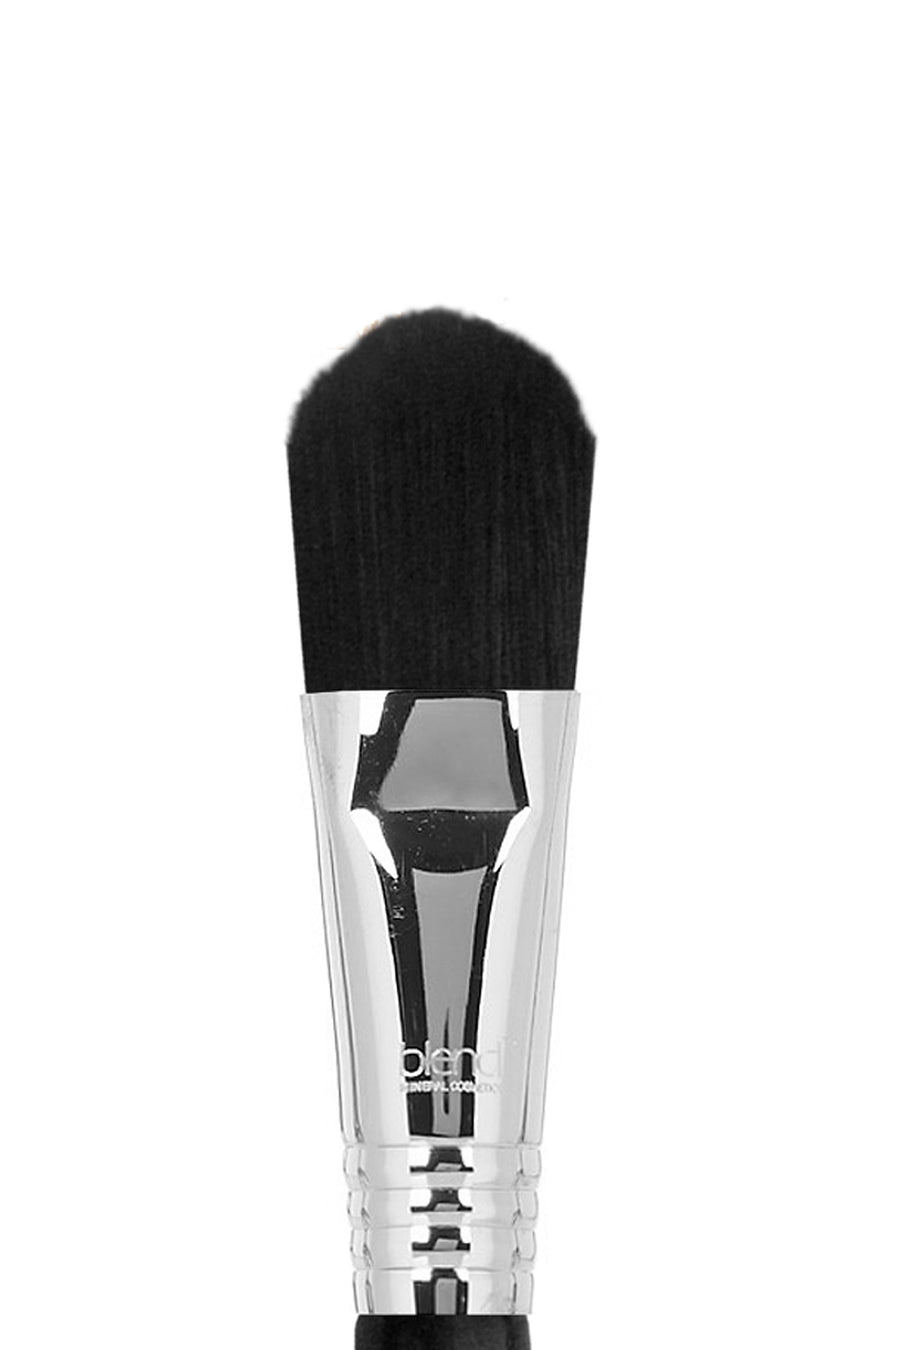 Professional Synthetic Brush - Liquid Foundation - Blend Mineral Cosmetics